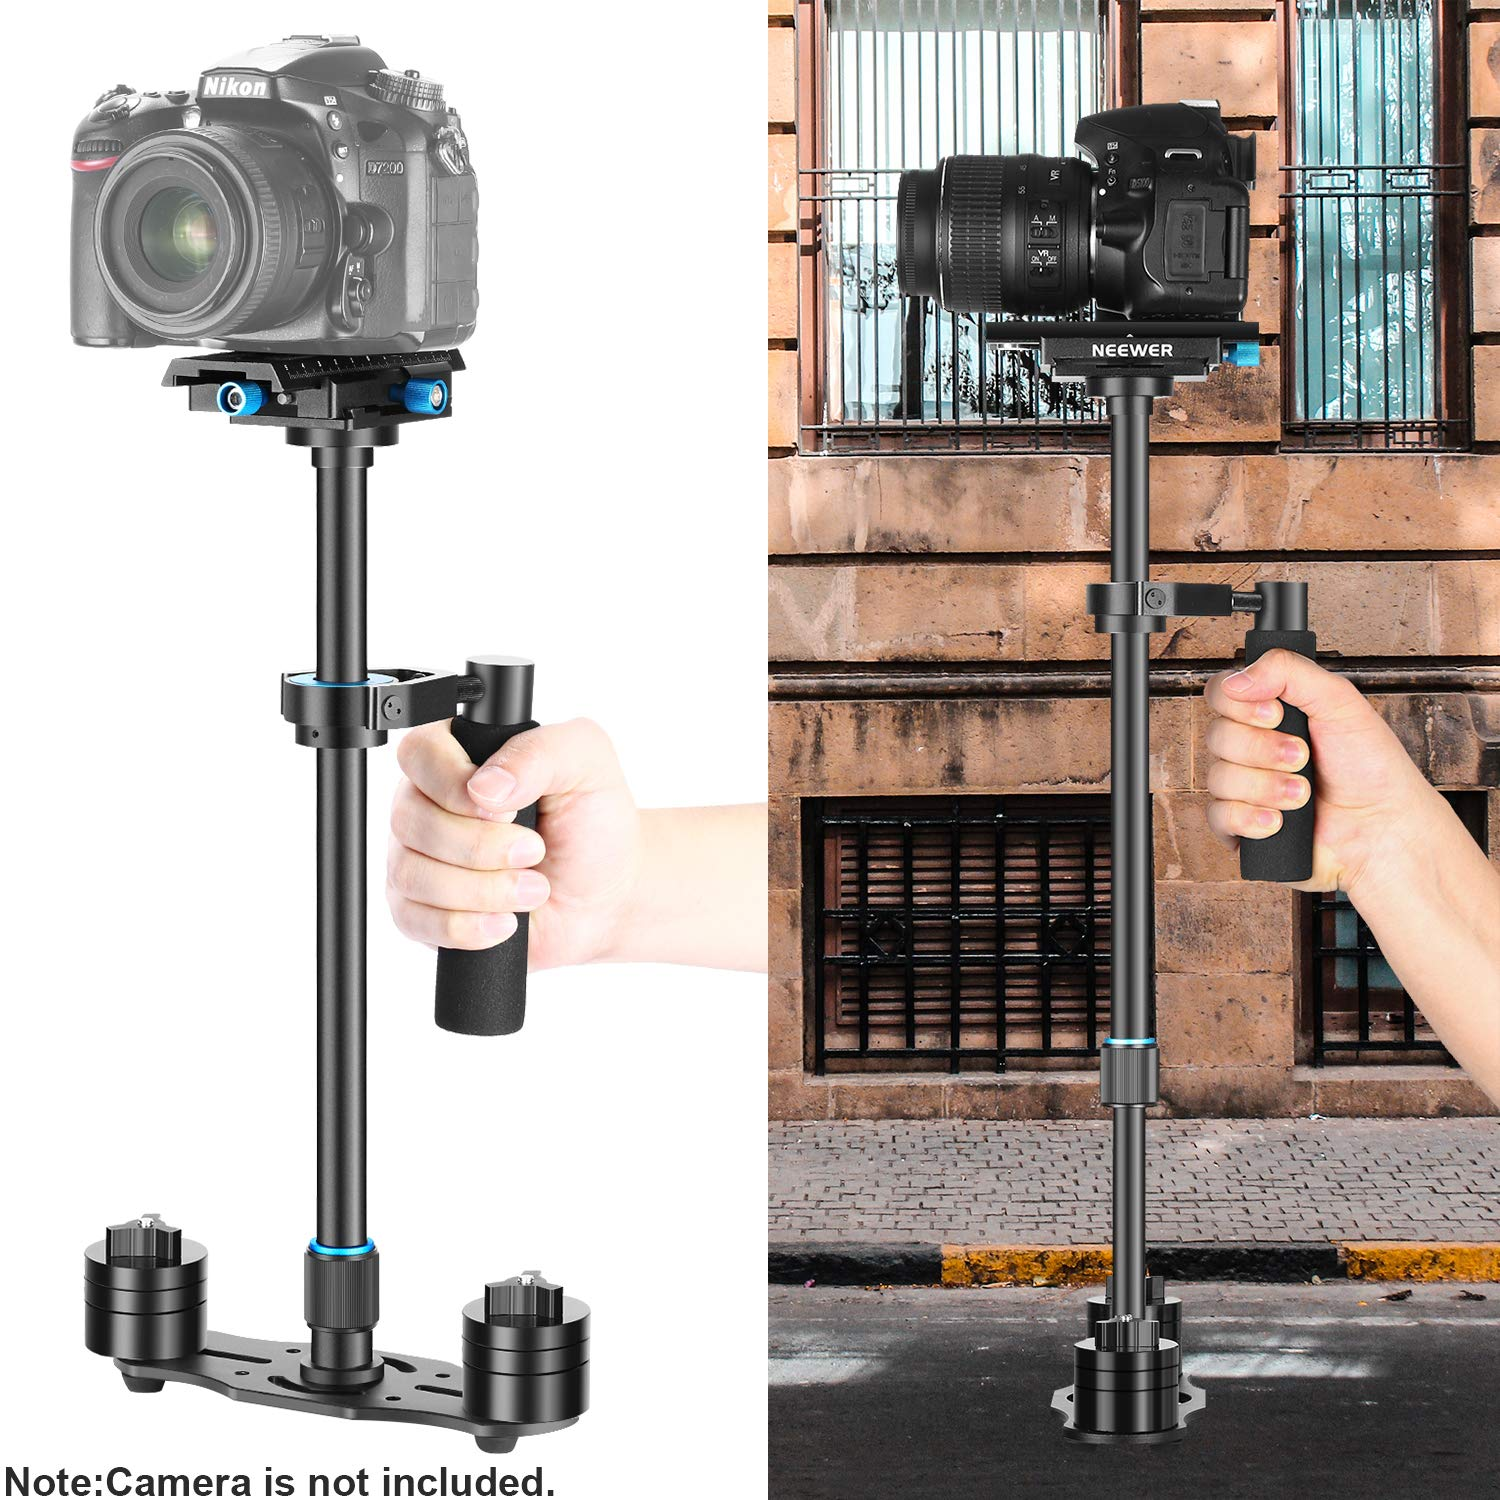 Neewer Aluminium Alloy 24 inches//60 centimeters Handheld Stabilizer with 1//4 3//8 inch Screw Quick Shoe Plate for Canon Nikon Sony Other DSLR Camera Video DV up to 6.6 pounds//3 kilograms Black